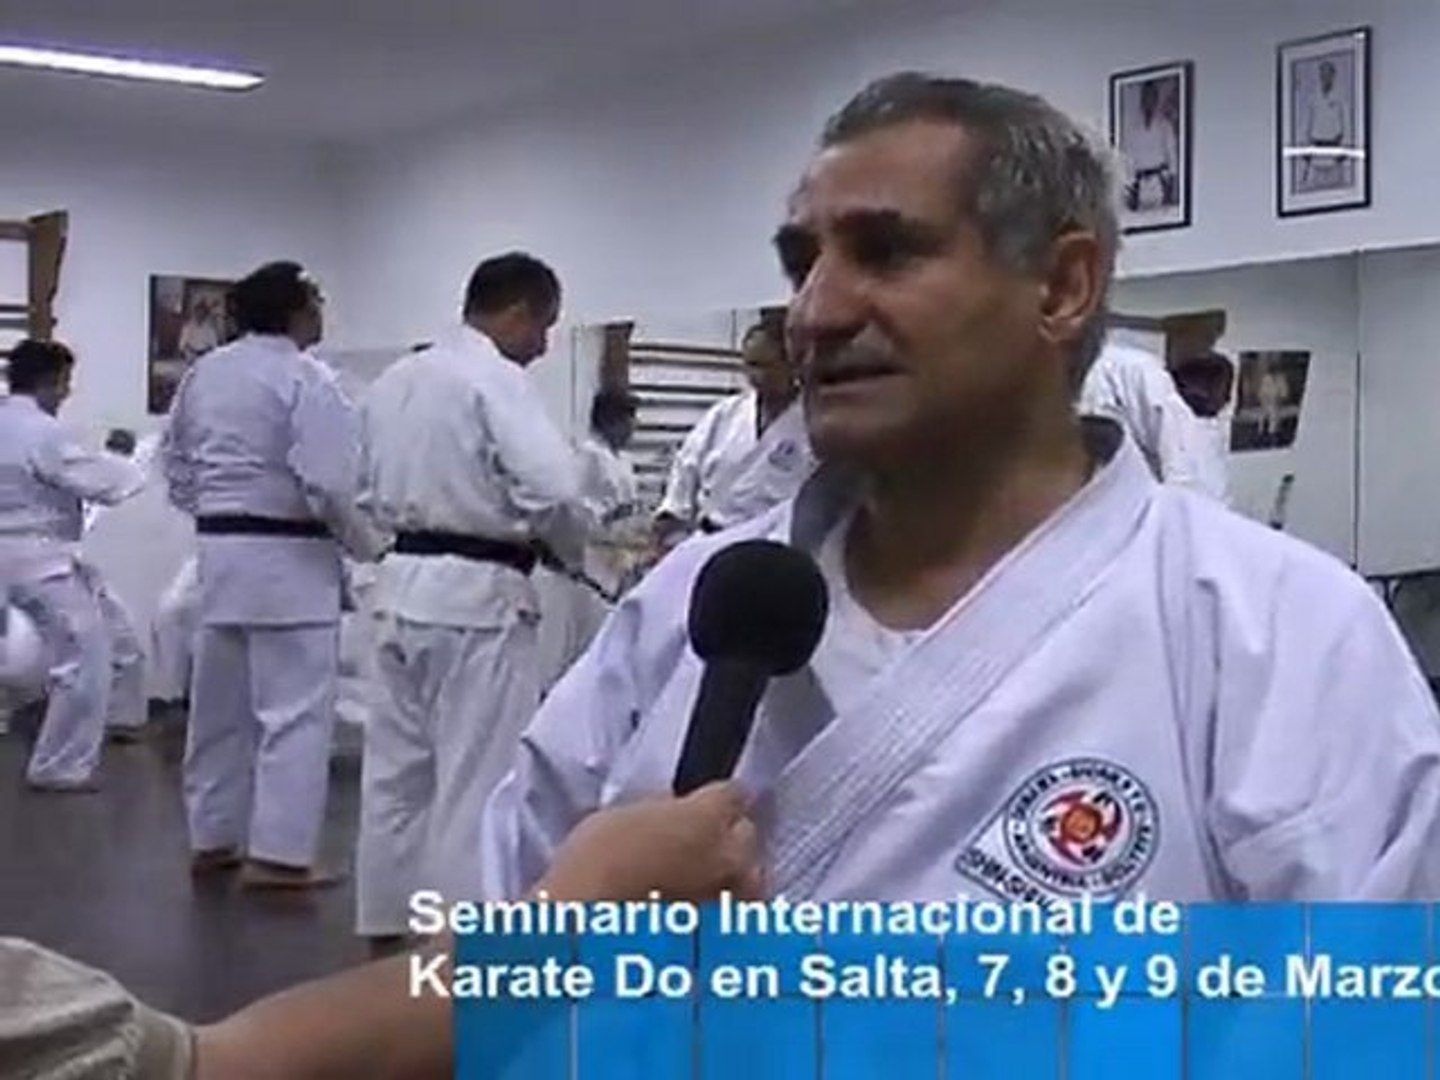 Seminario Internacional De Karate Do En Salta